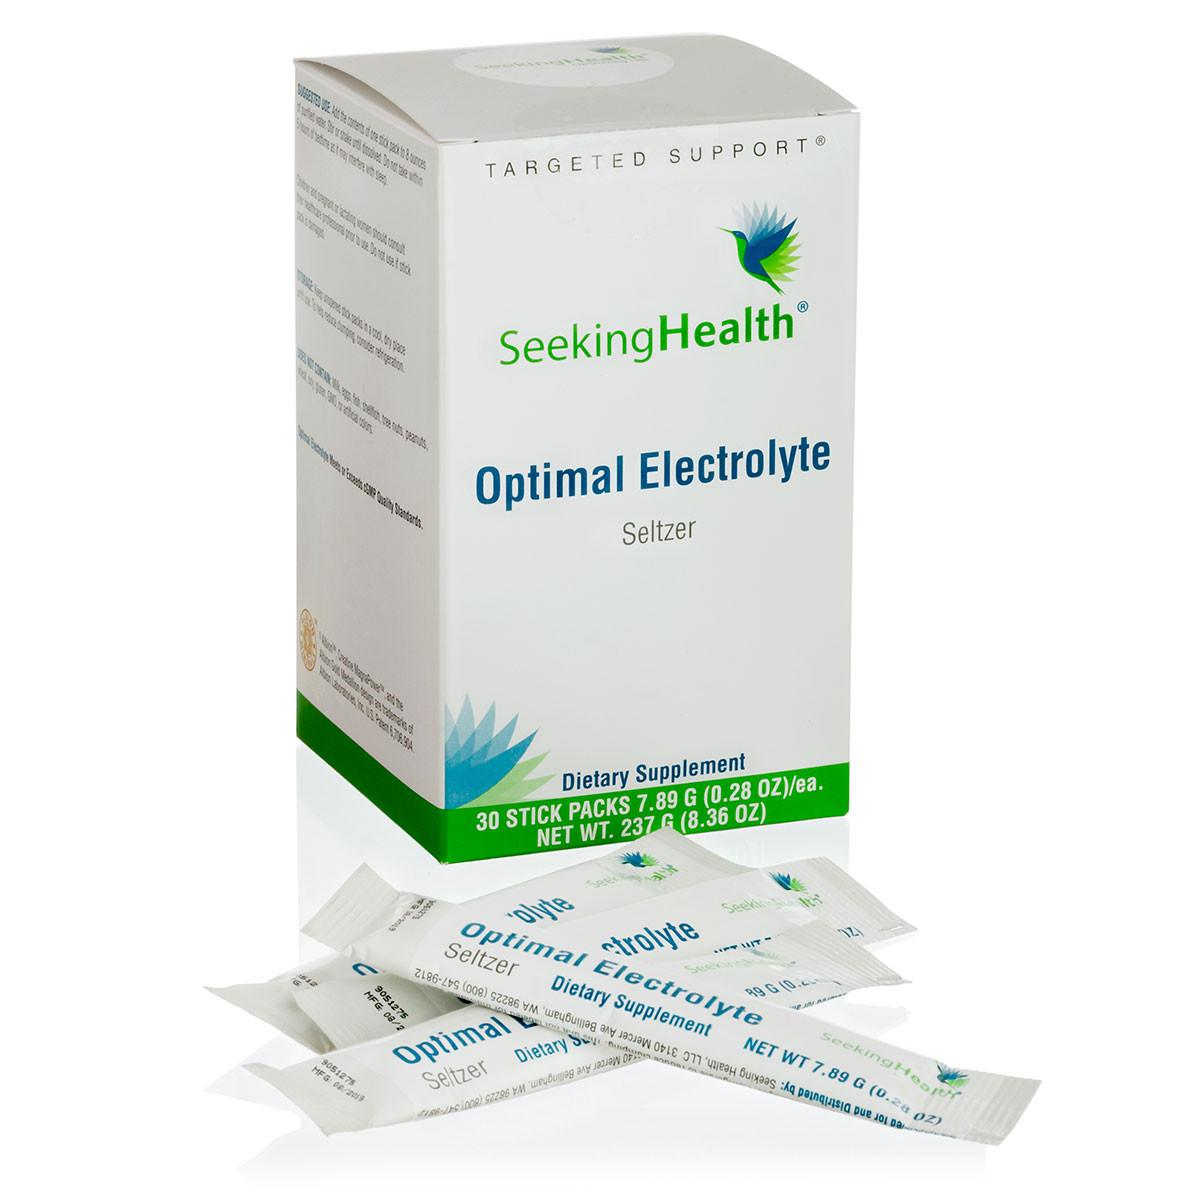 Optimal Electrolyte Seltzer stick packs plain from Seeking Health